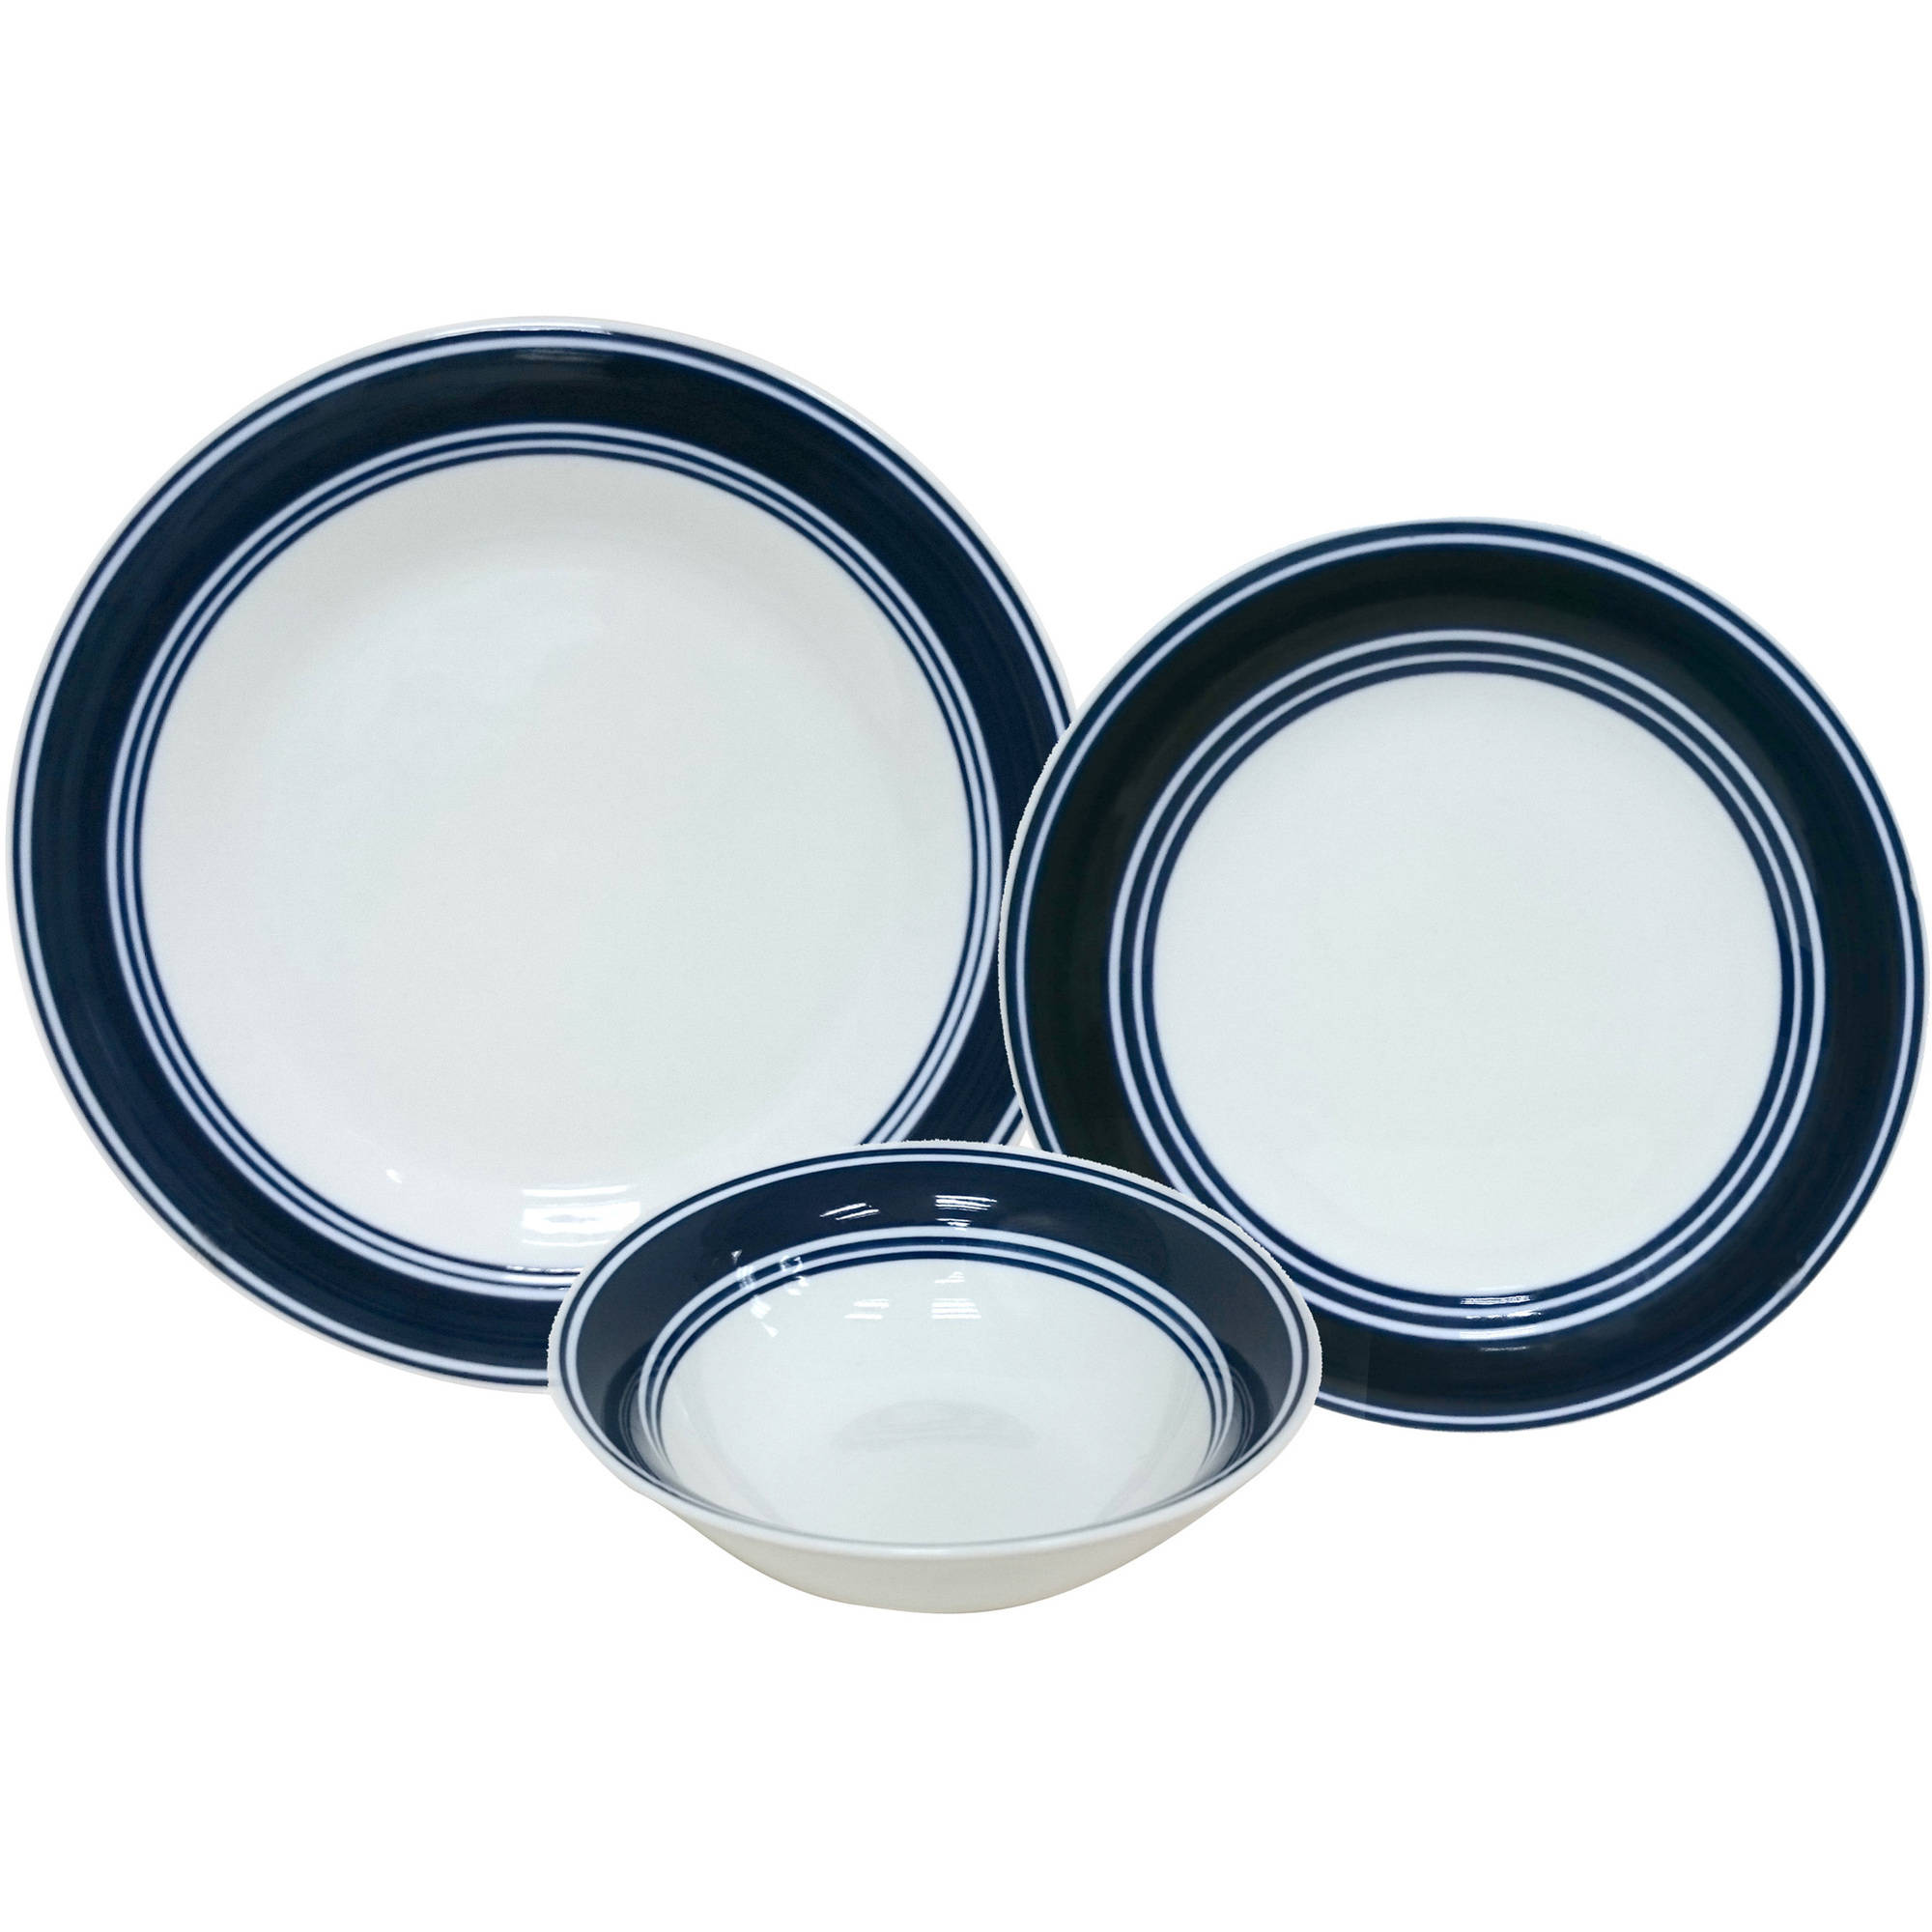 Mainstays Blue Banded 12-Piece Stoneware Dinnerware Set